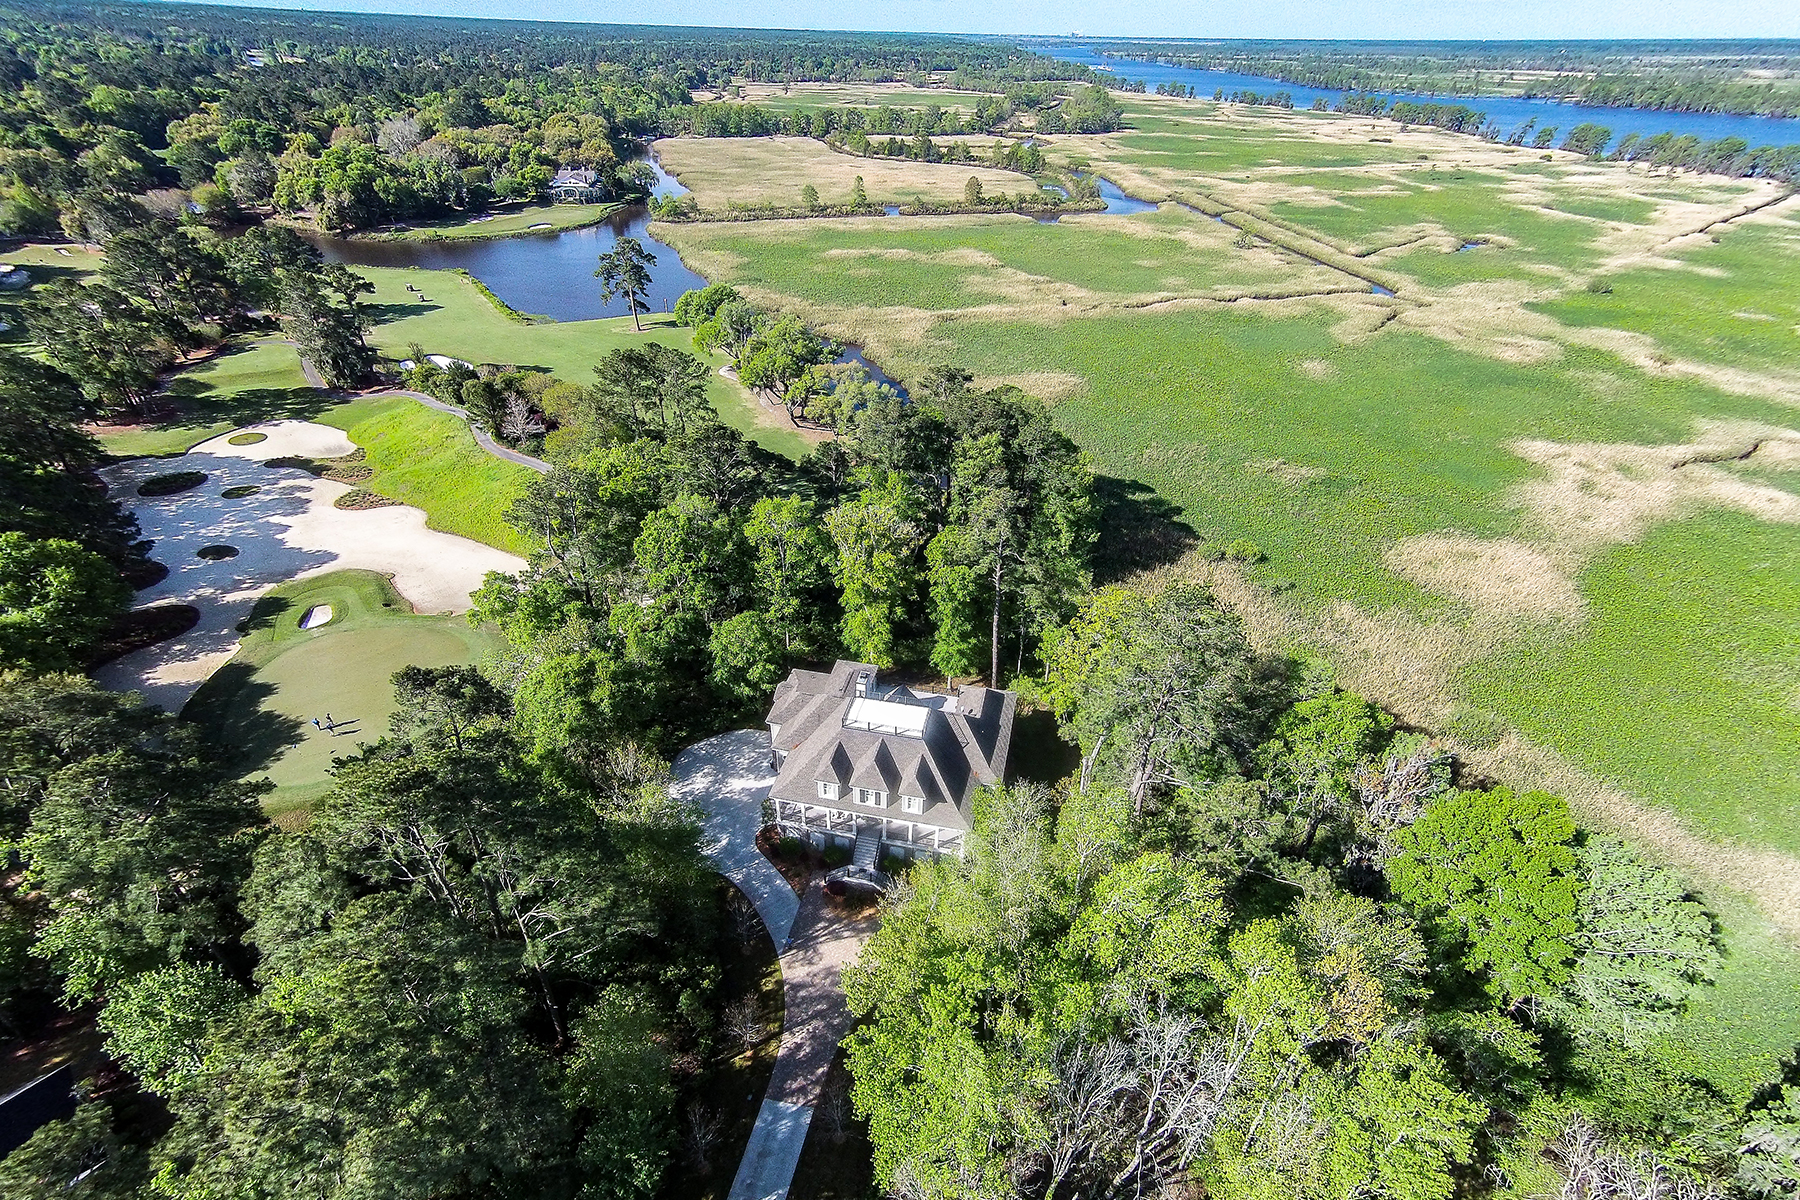 Single Family Home for Sale at 171 Olde Canal Loop 171 Olde Canal Loop Pawleys Island, South Carolina 29585 United States